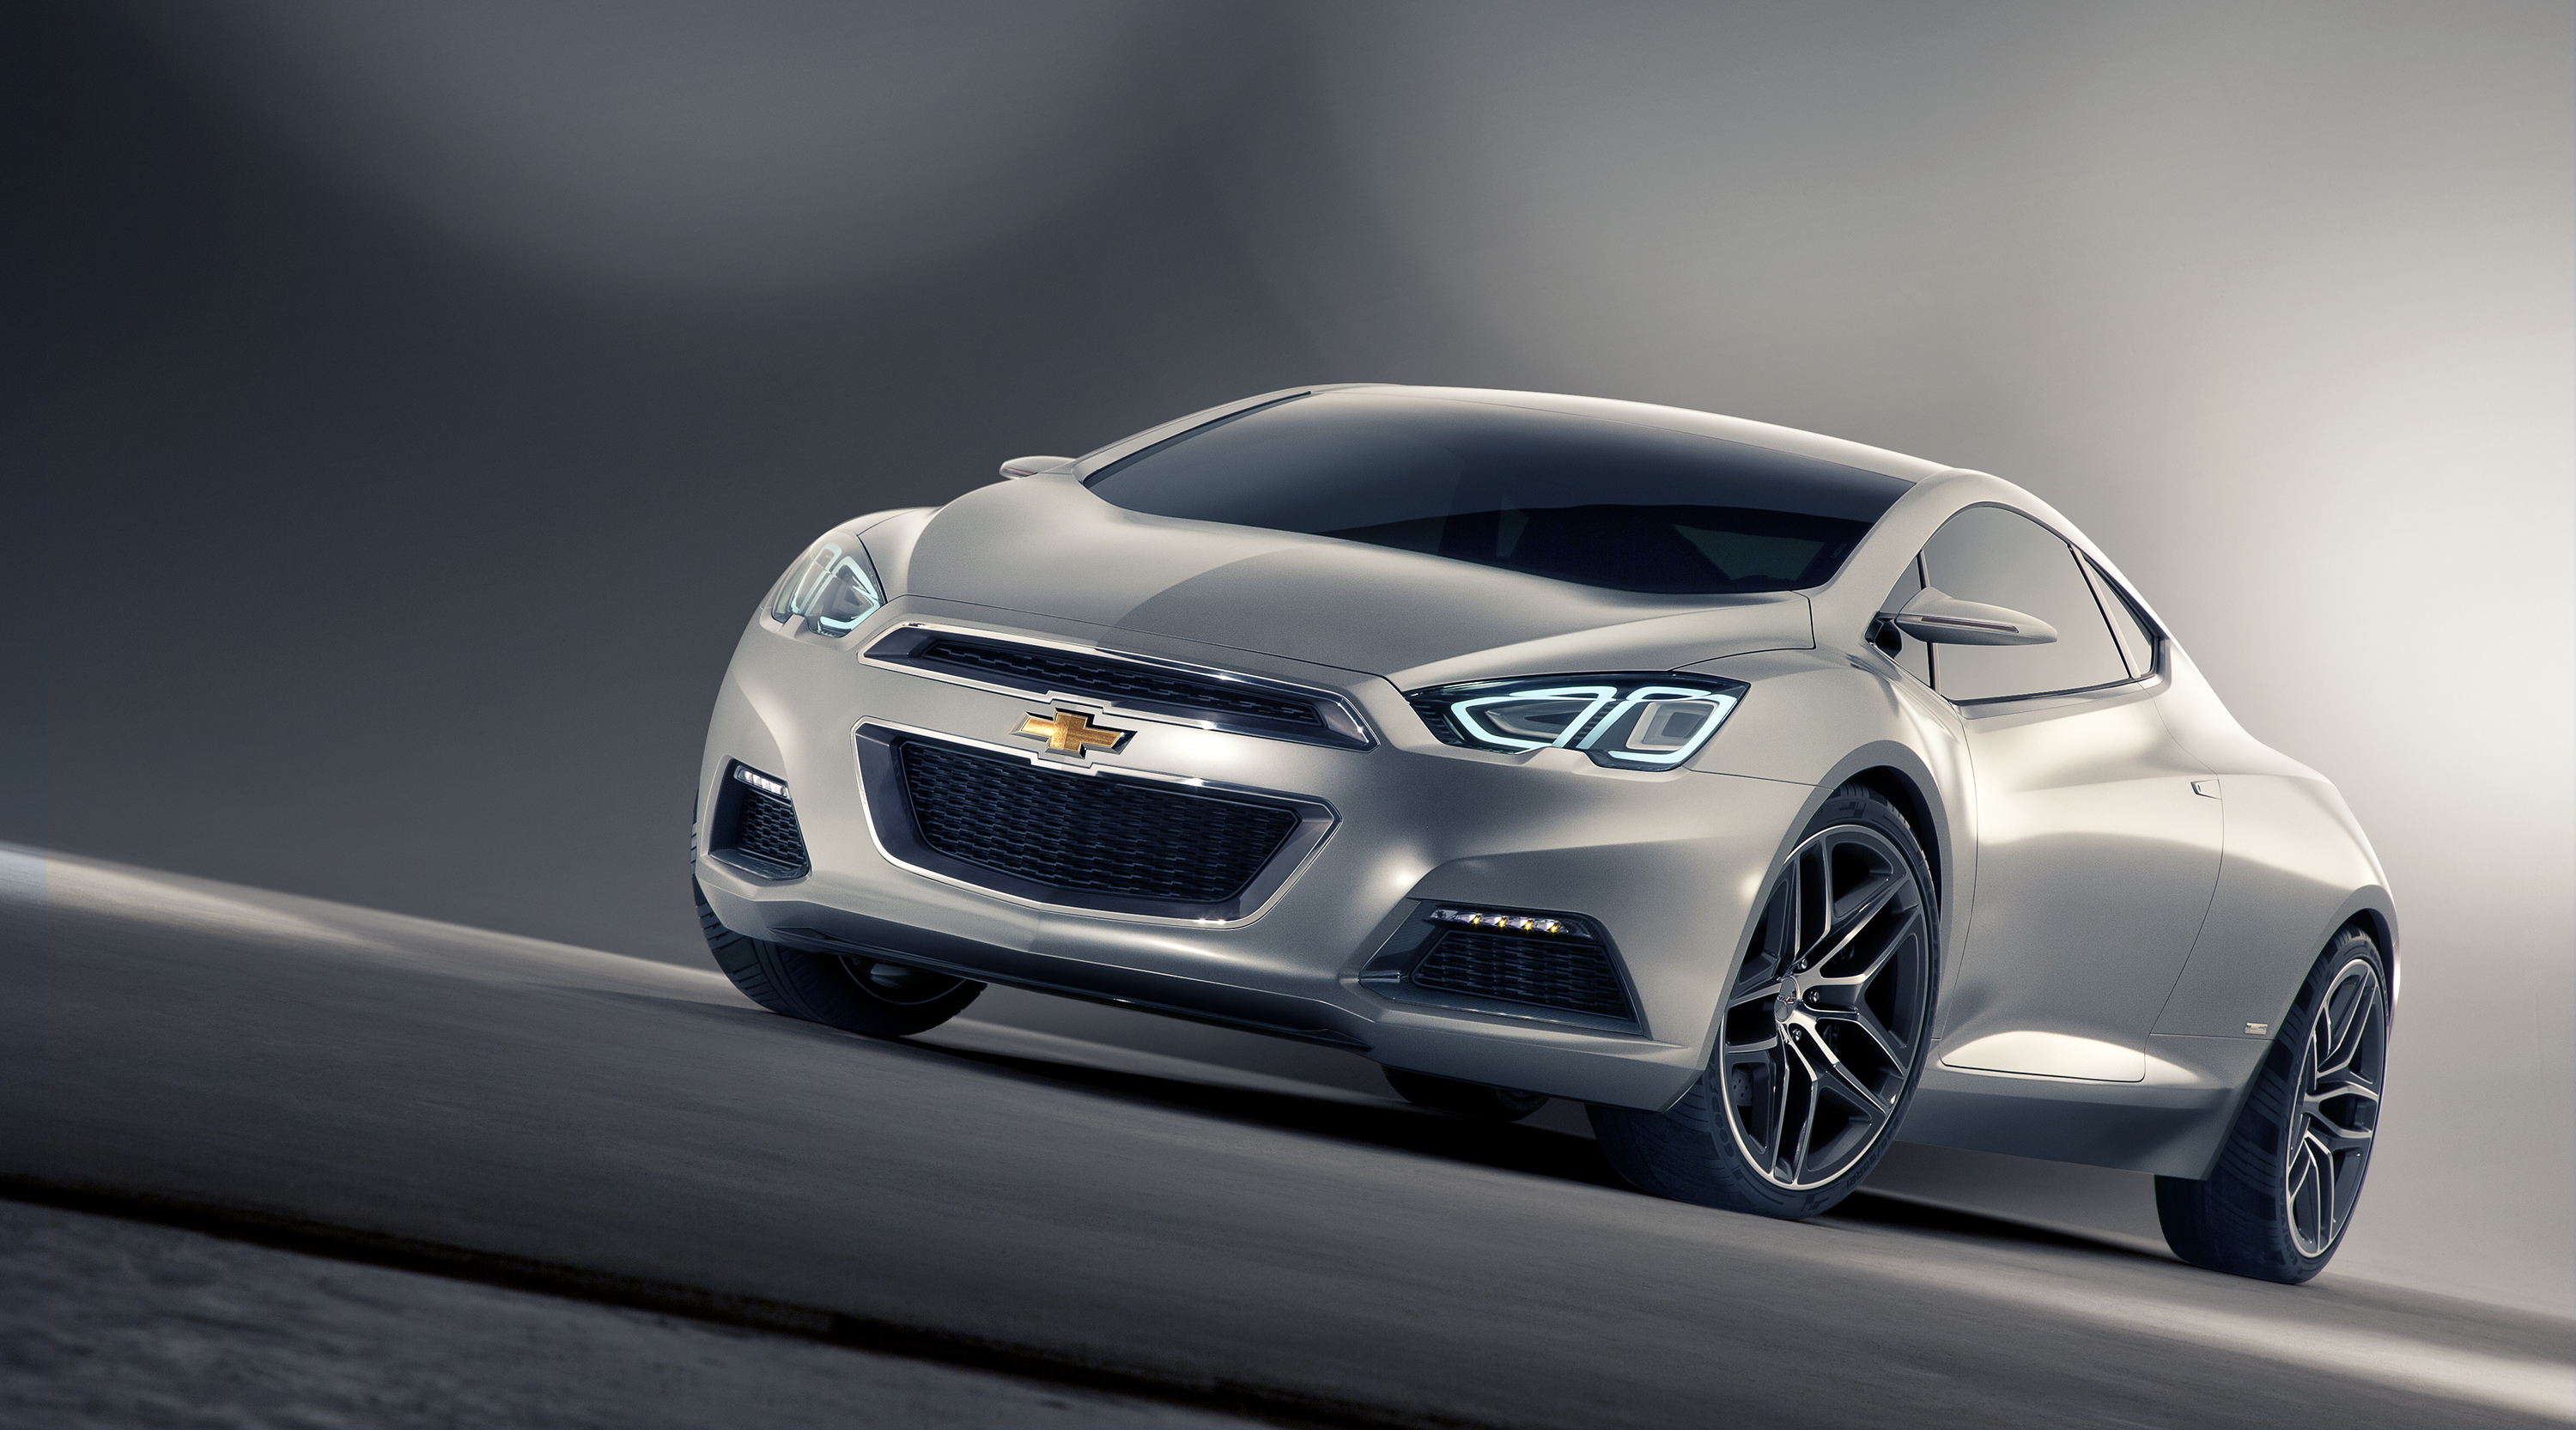 TRU140S and Code 130 Archives - GM-VOLT : Chevy Volt Electric Car ...